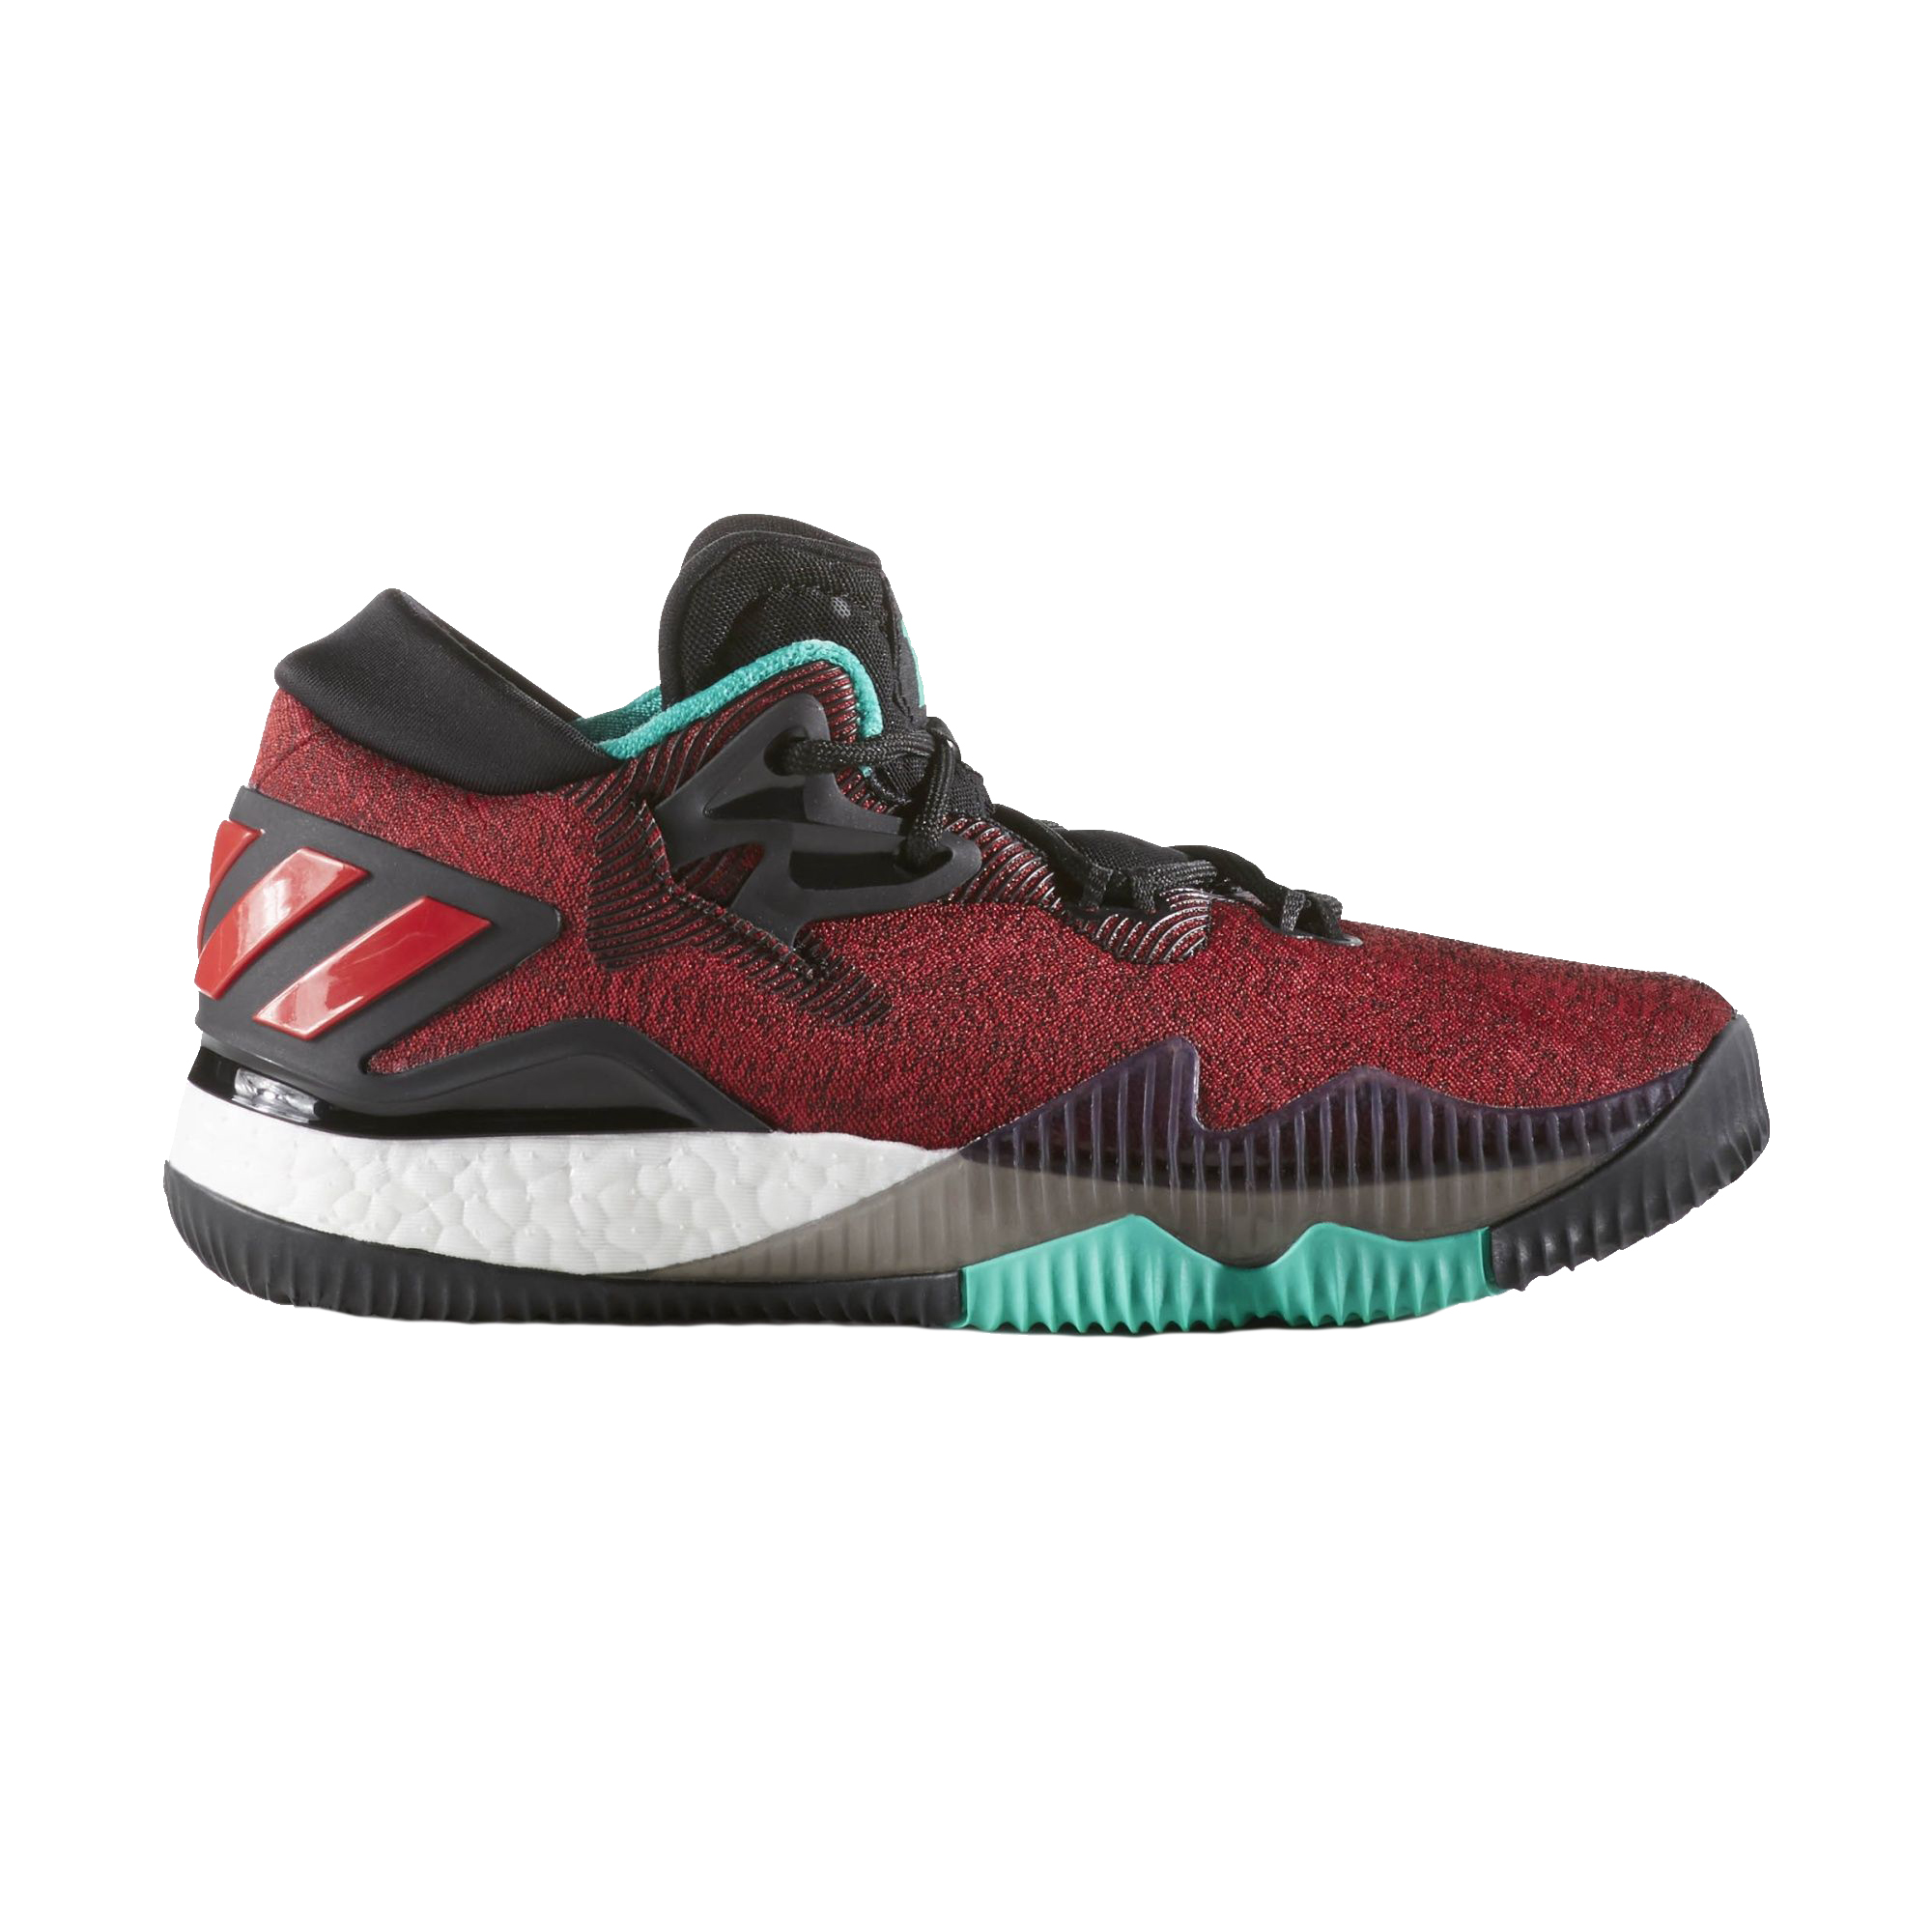 classic fit 16716 4ce64 Adidas Crazylight Boost Low James Harden J